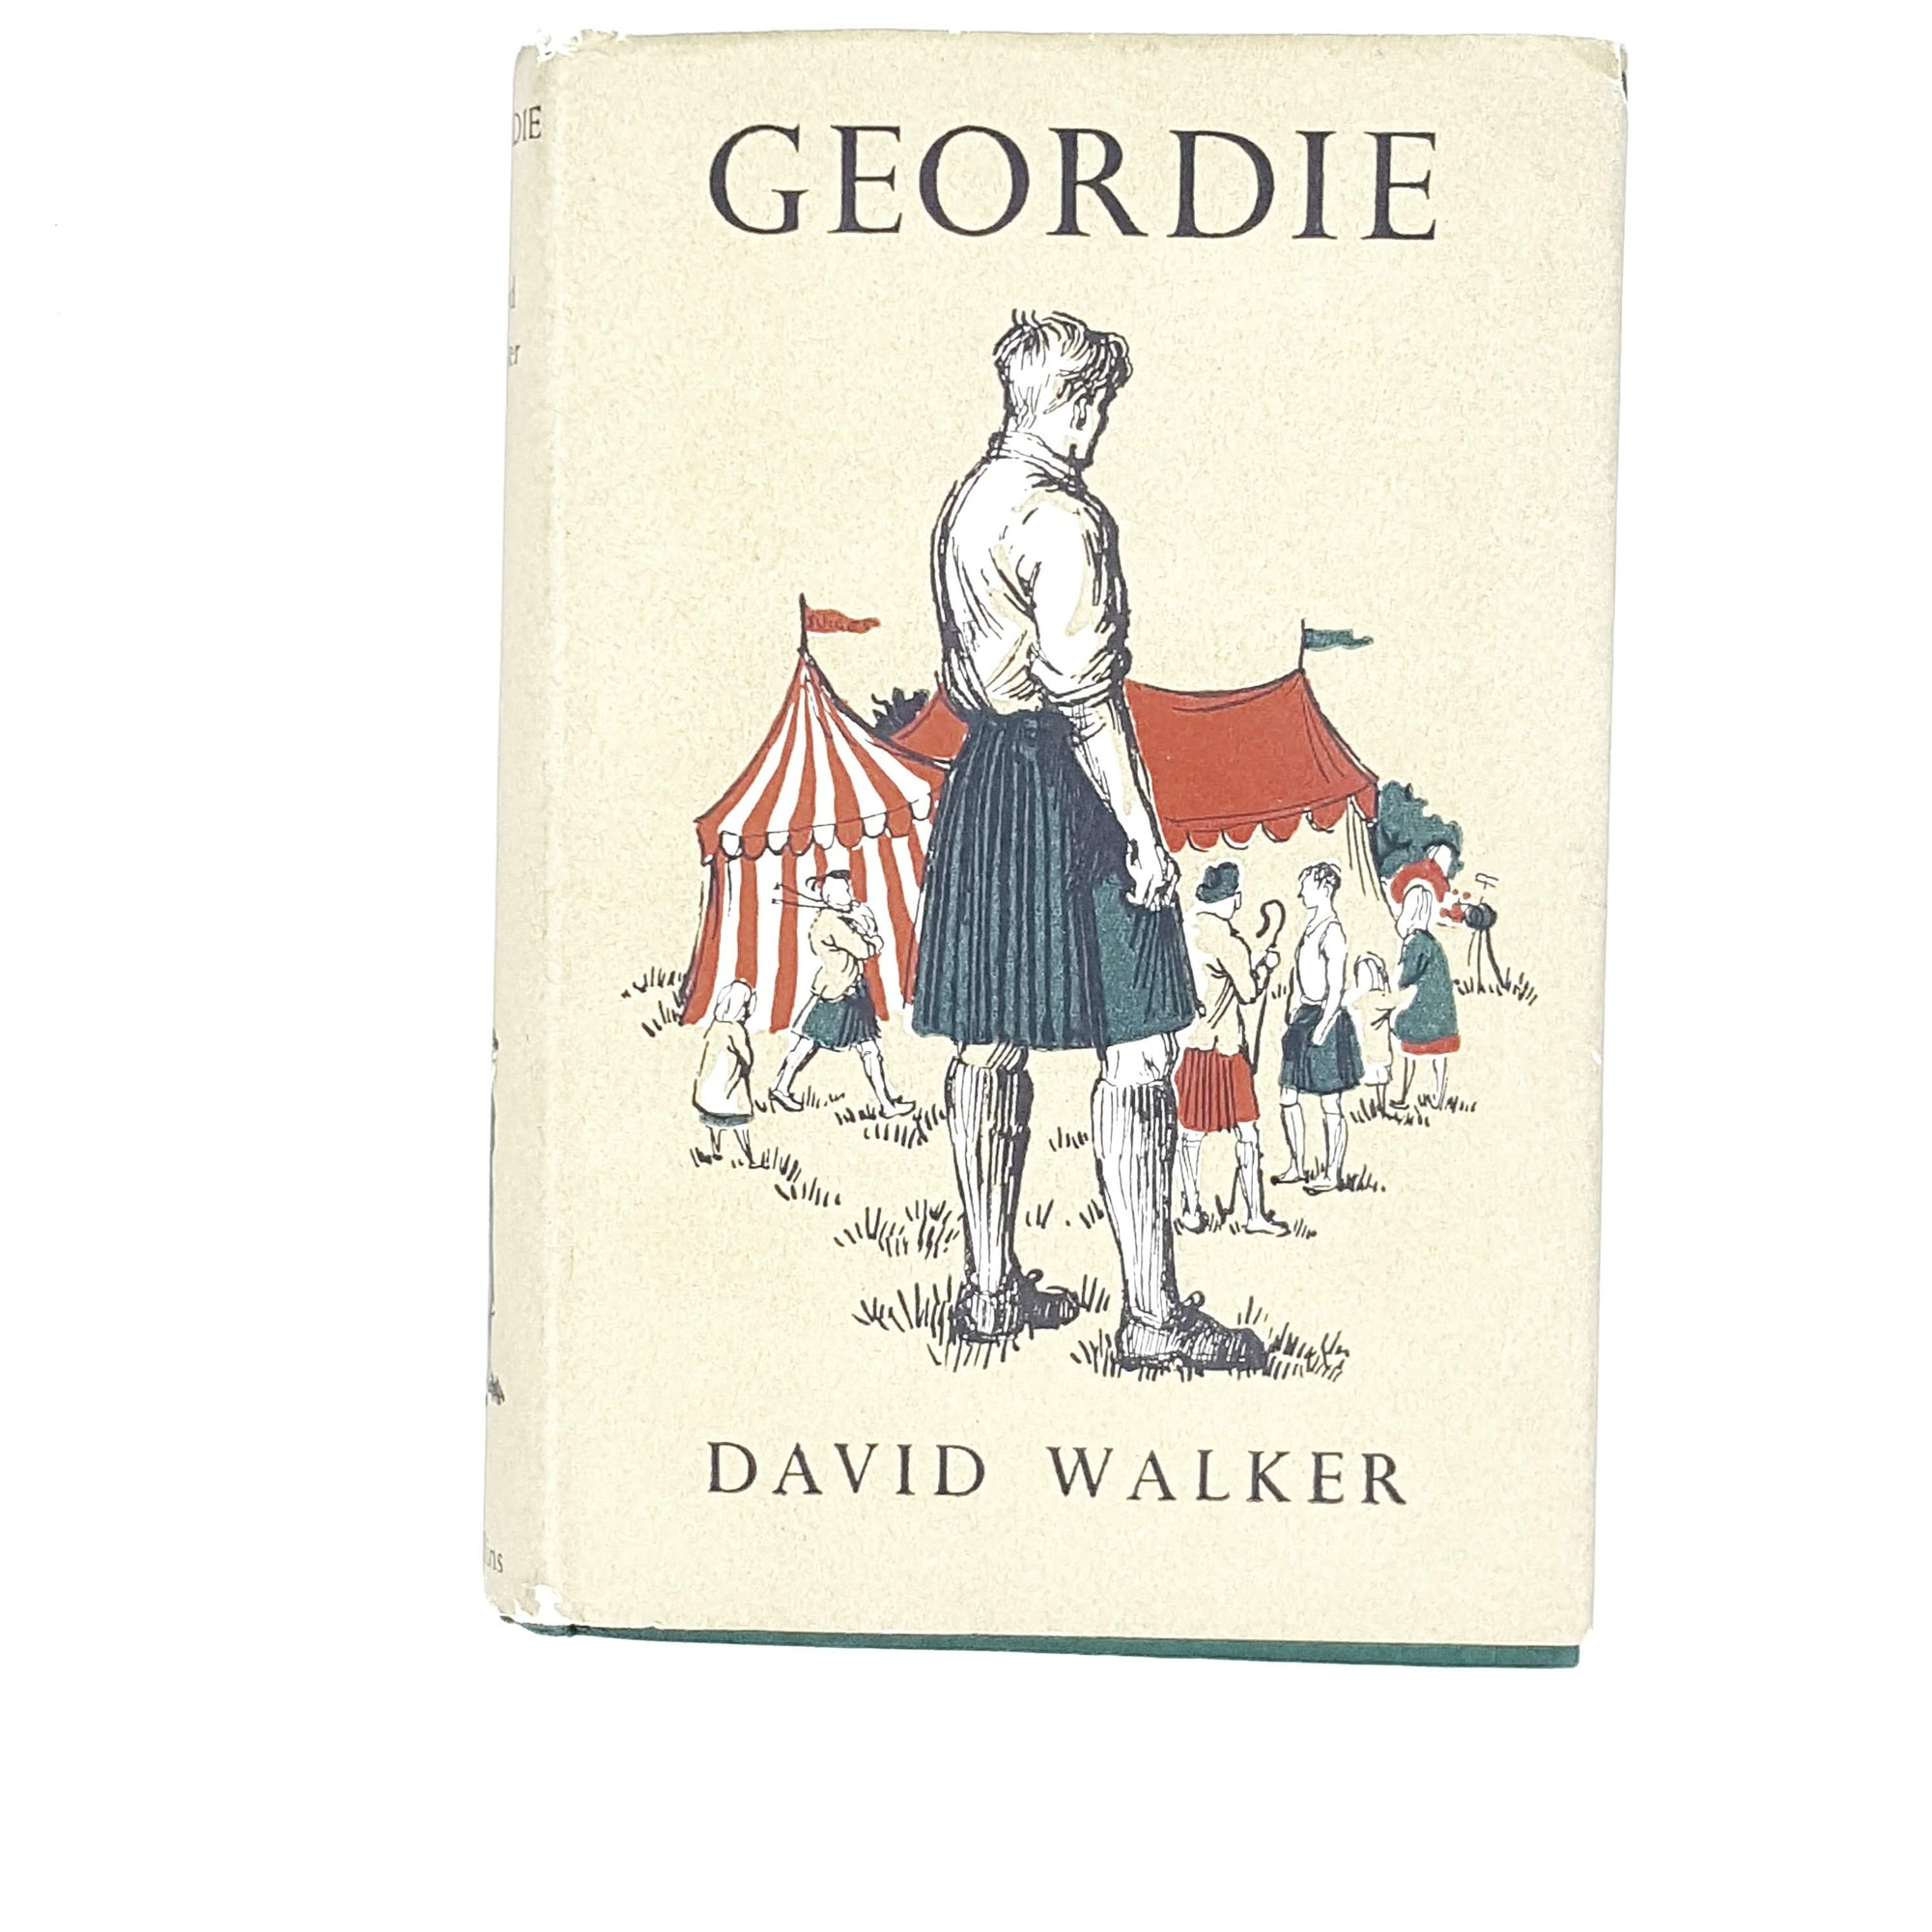 Geordie by David Walker 1950